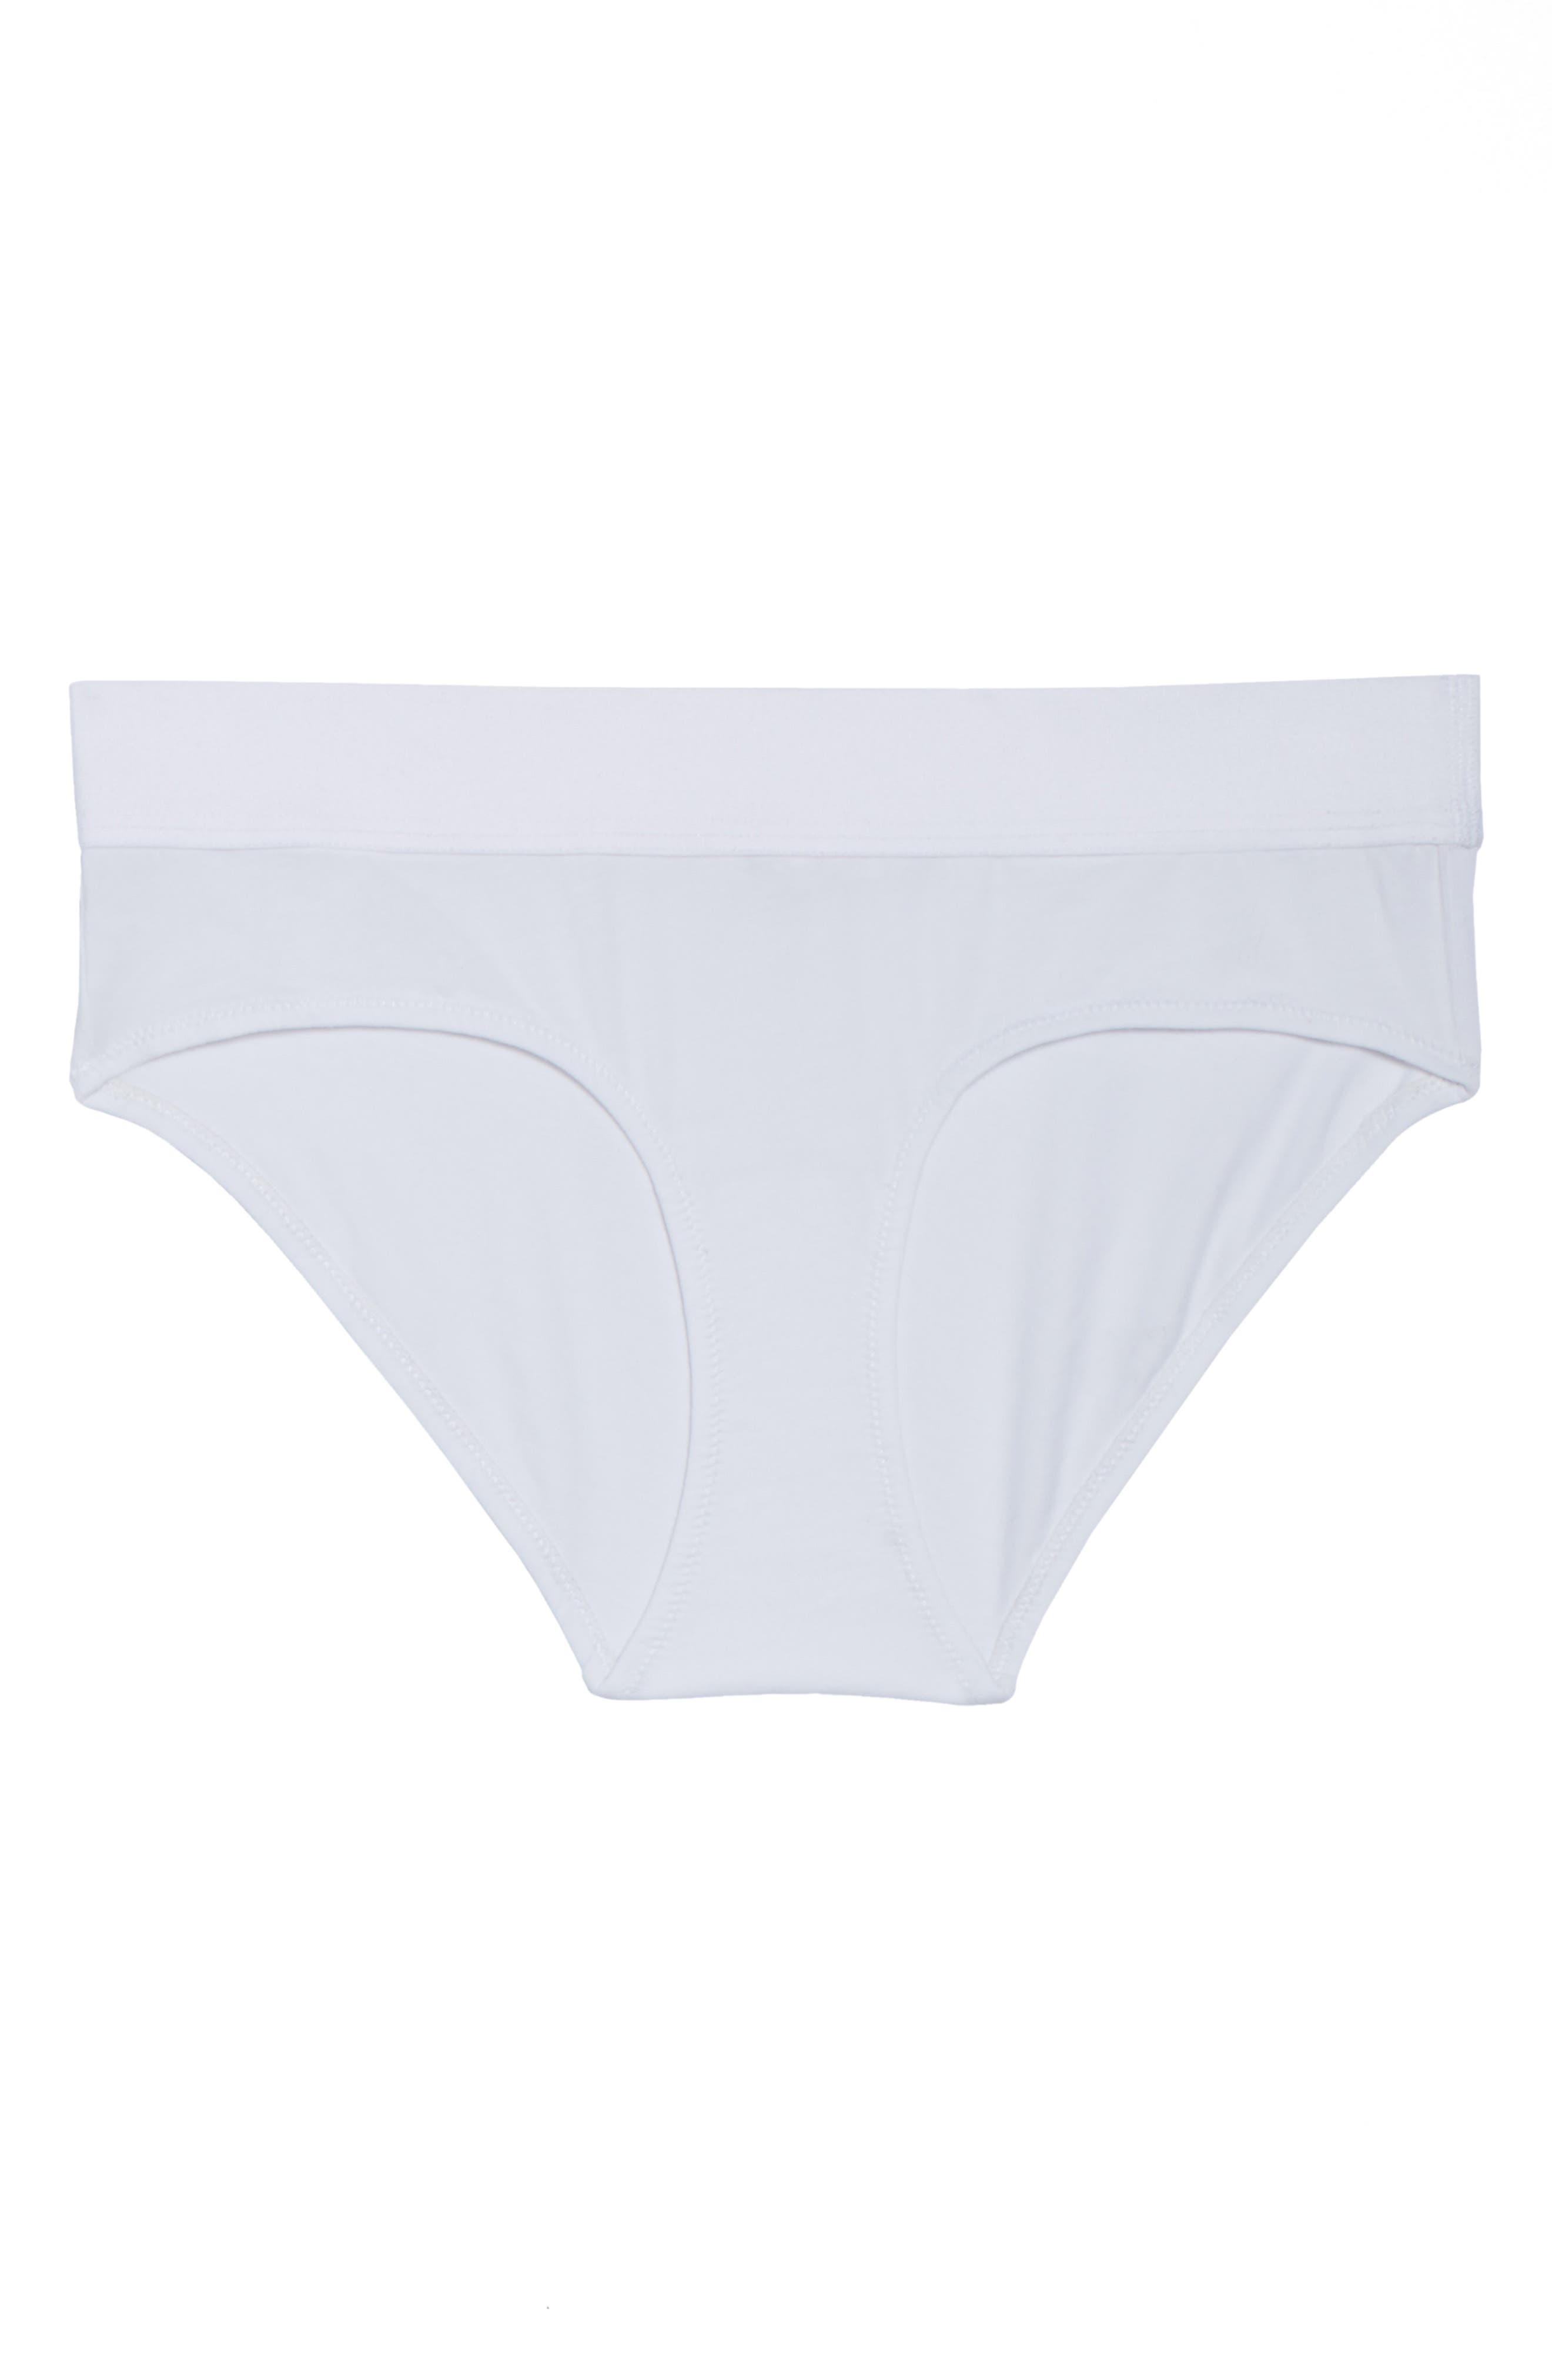 Hadlee Hipster Briefs,                             Alternate thumbnail 15, color,